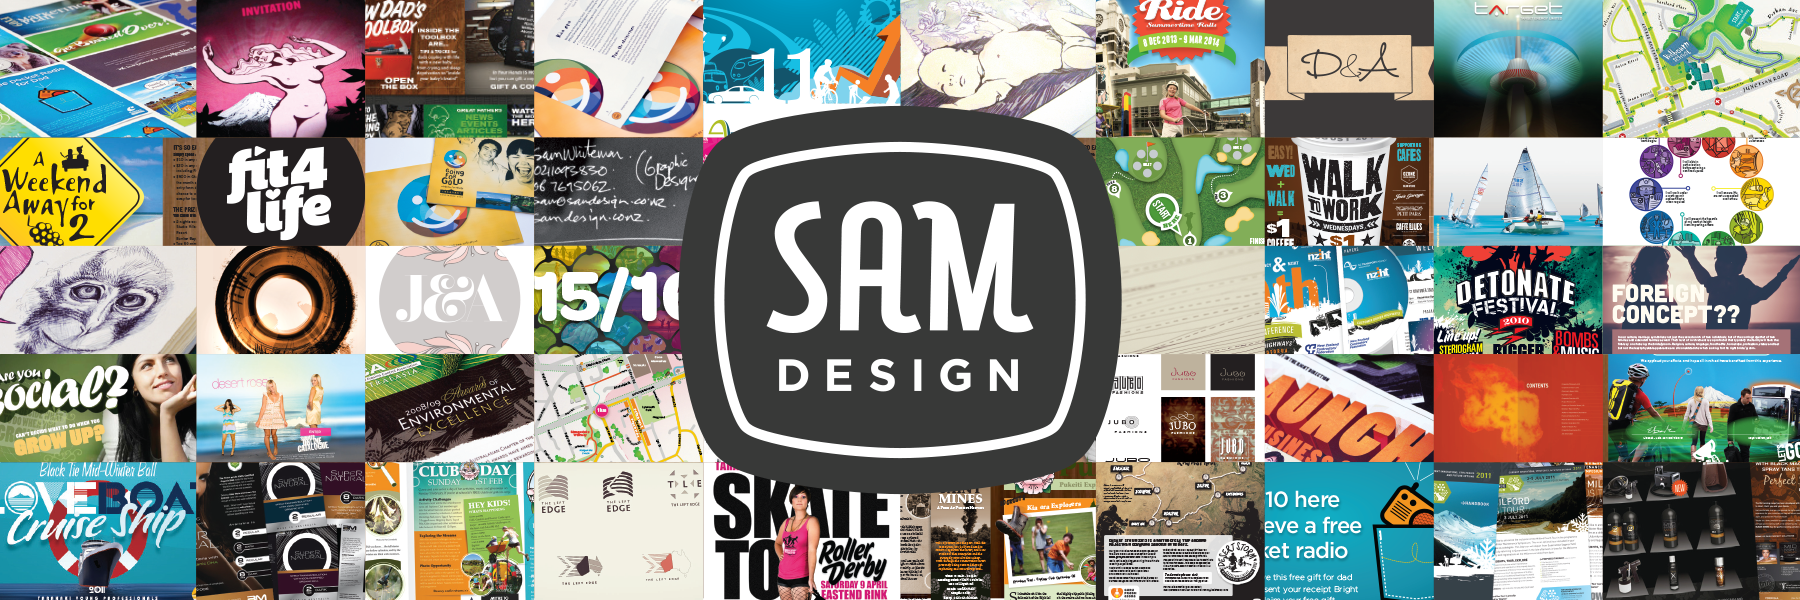 samdesign.co.nz